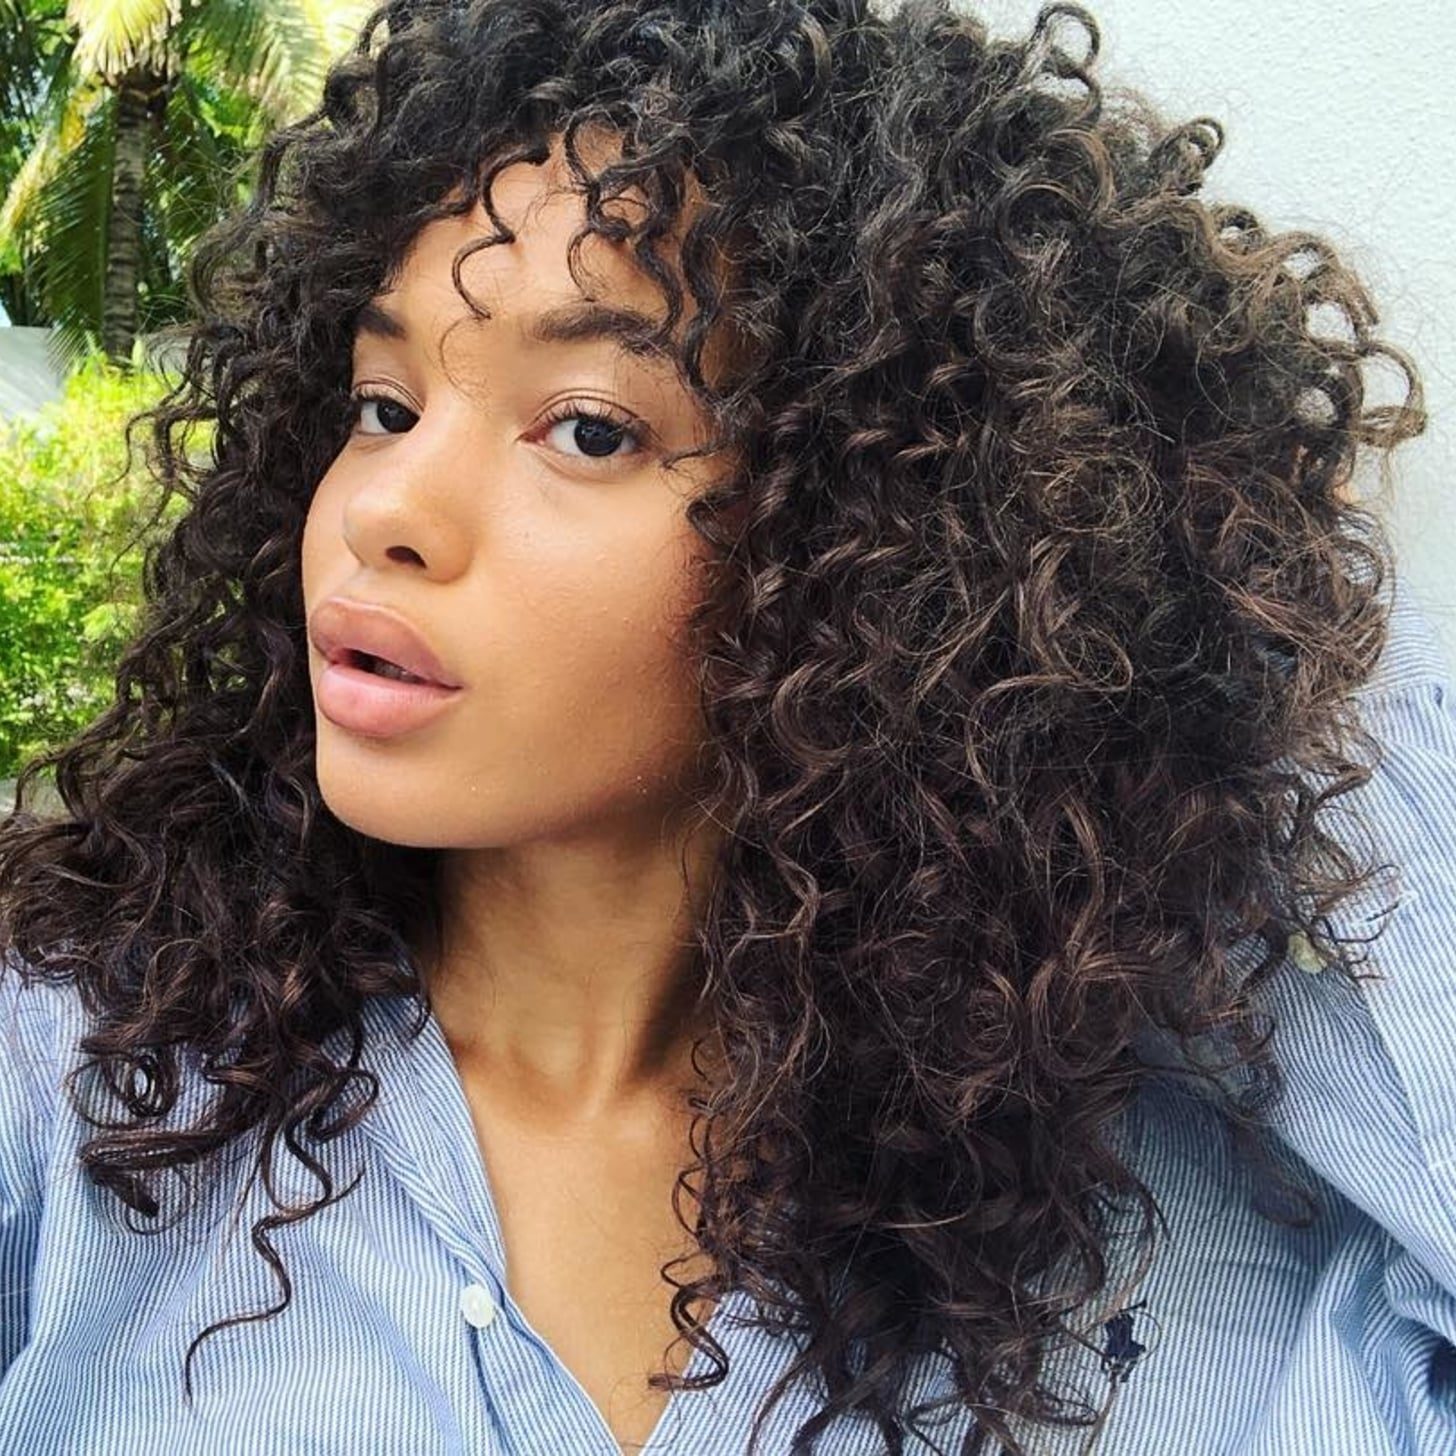 Mid-Length Hairstyles For Thick Hair   POPSUGAR Beauty UK